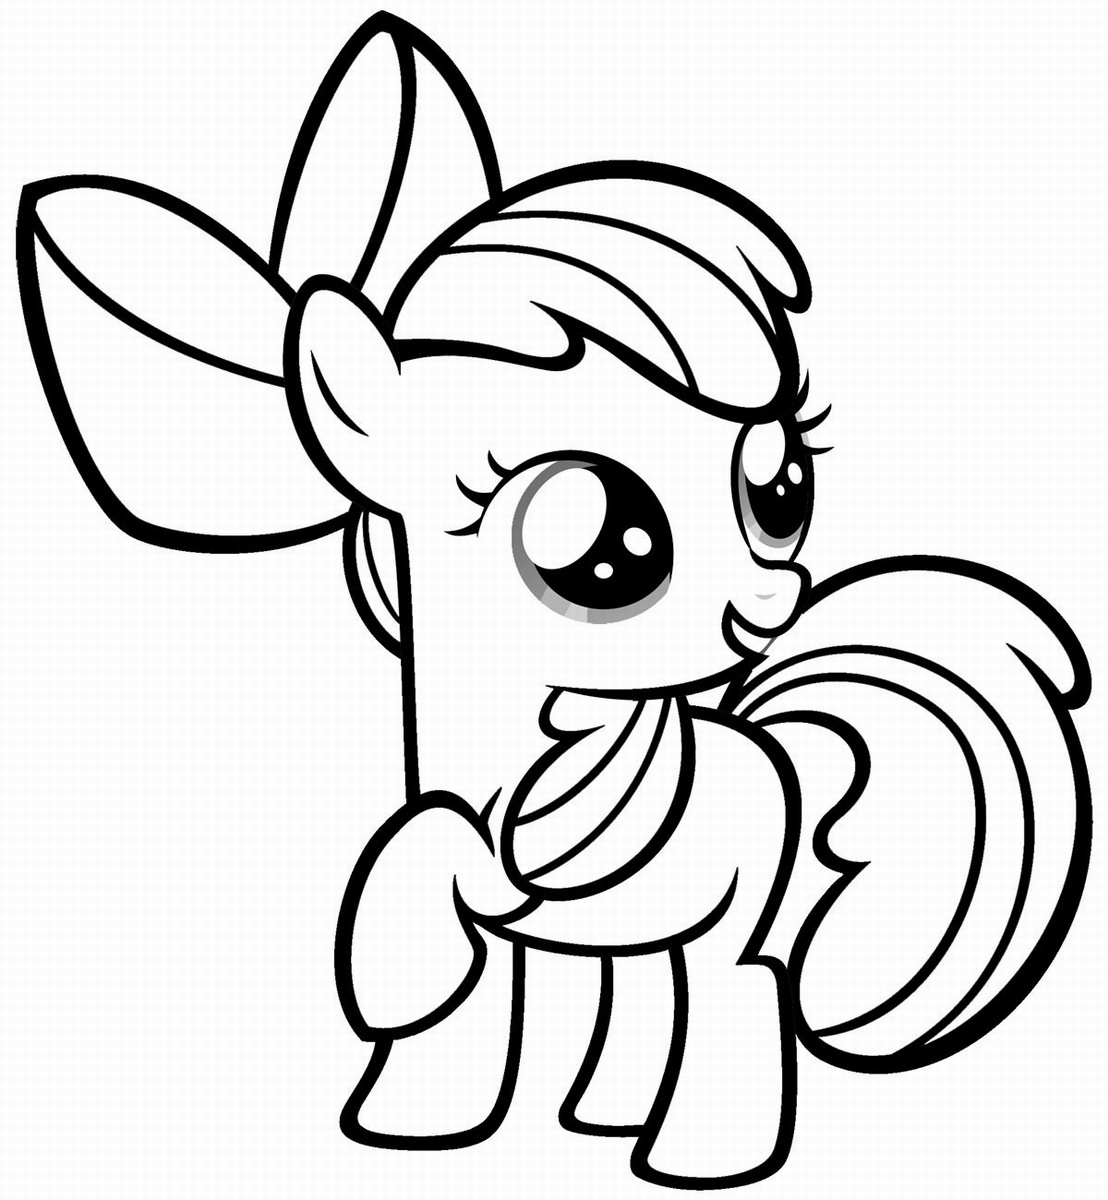 pony to color free printable my little pony coloring pages for kids to color pony